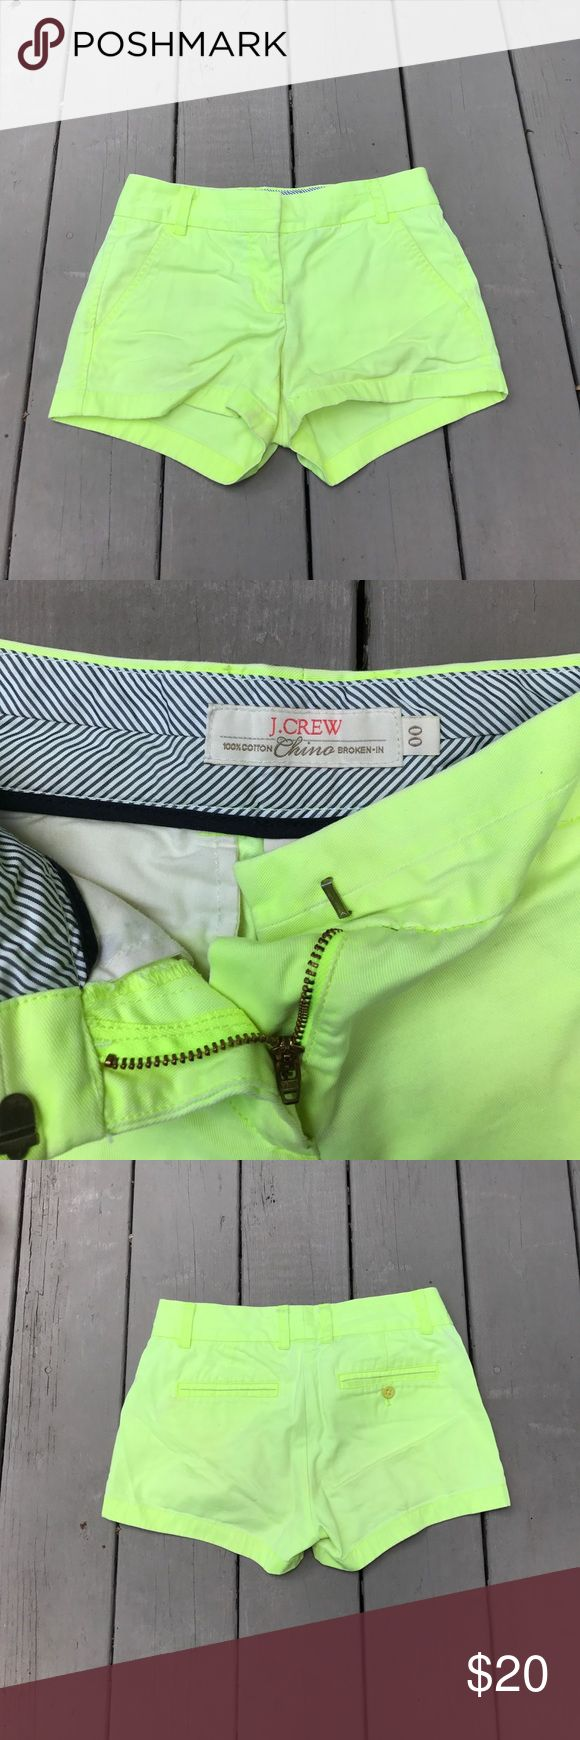 lime green shorts j crew chino style gently worn J. Crew Shorts